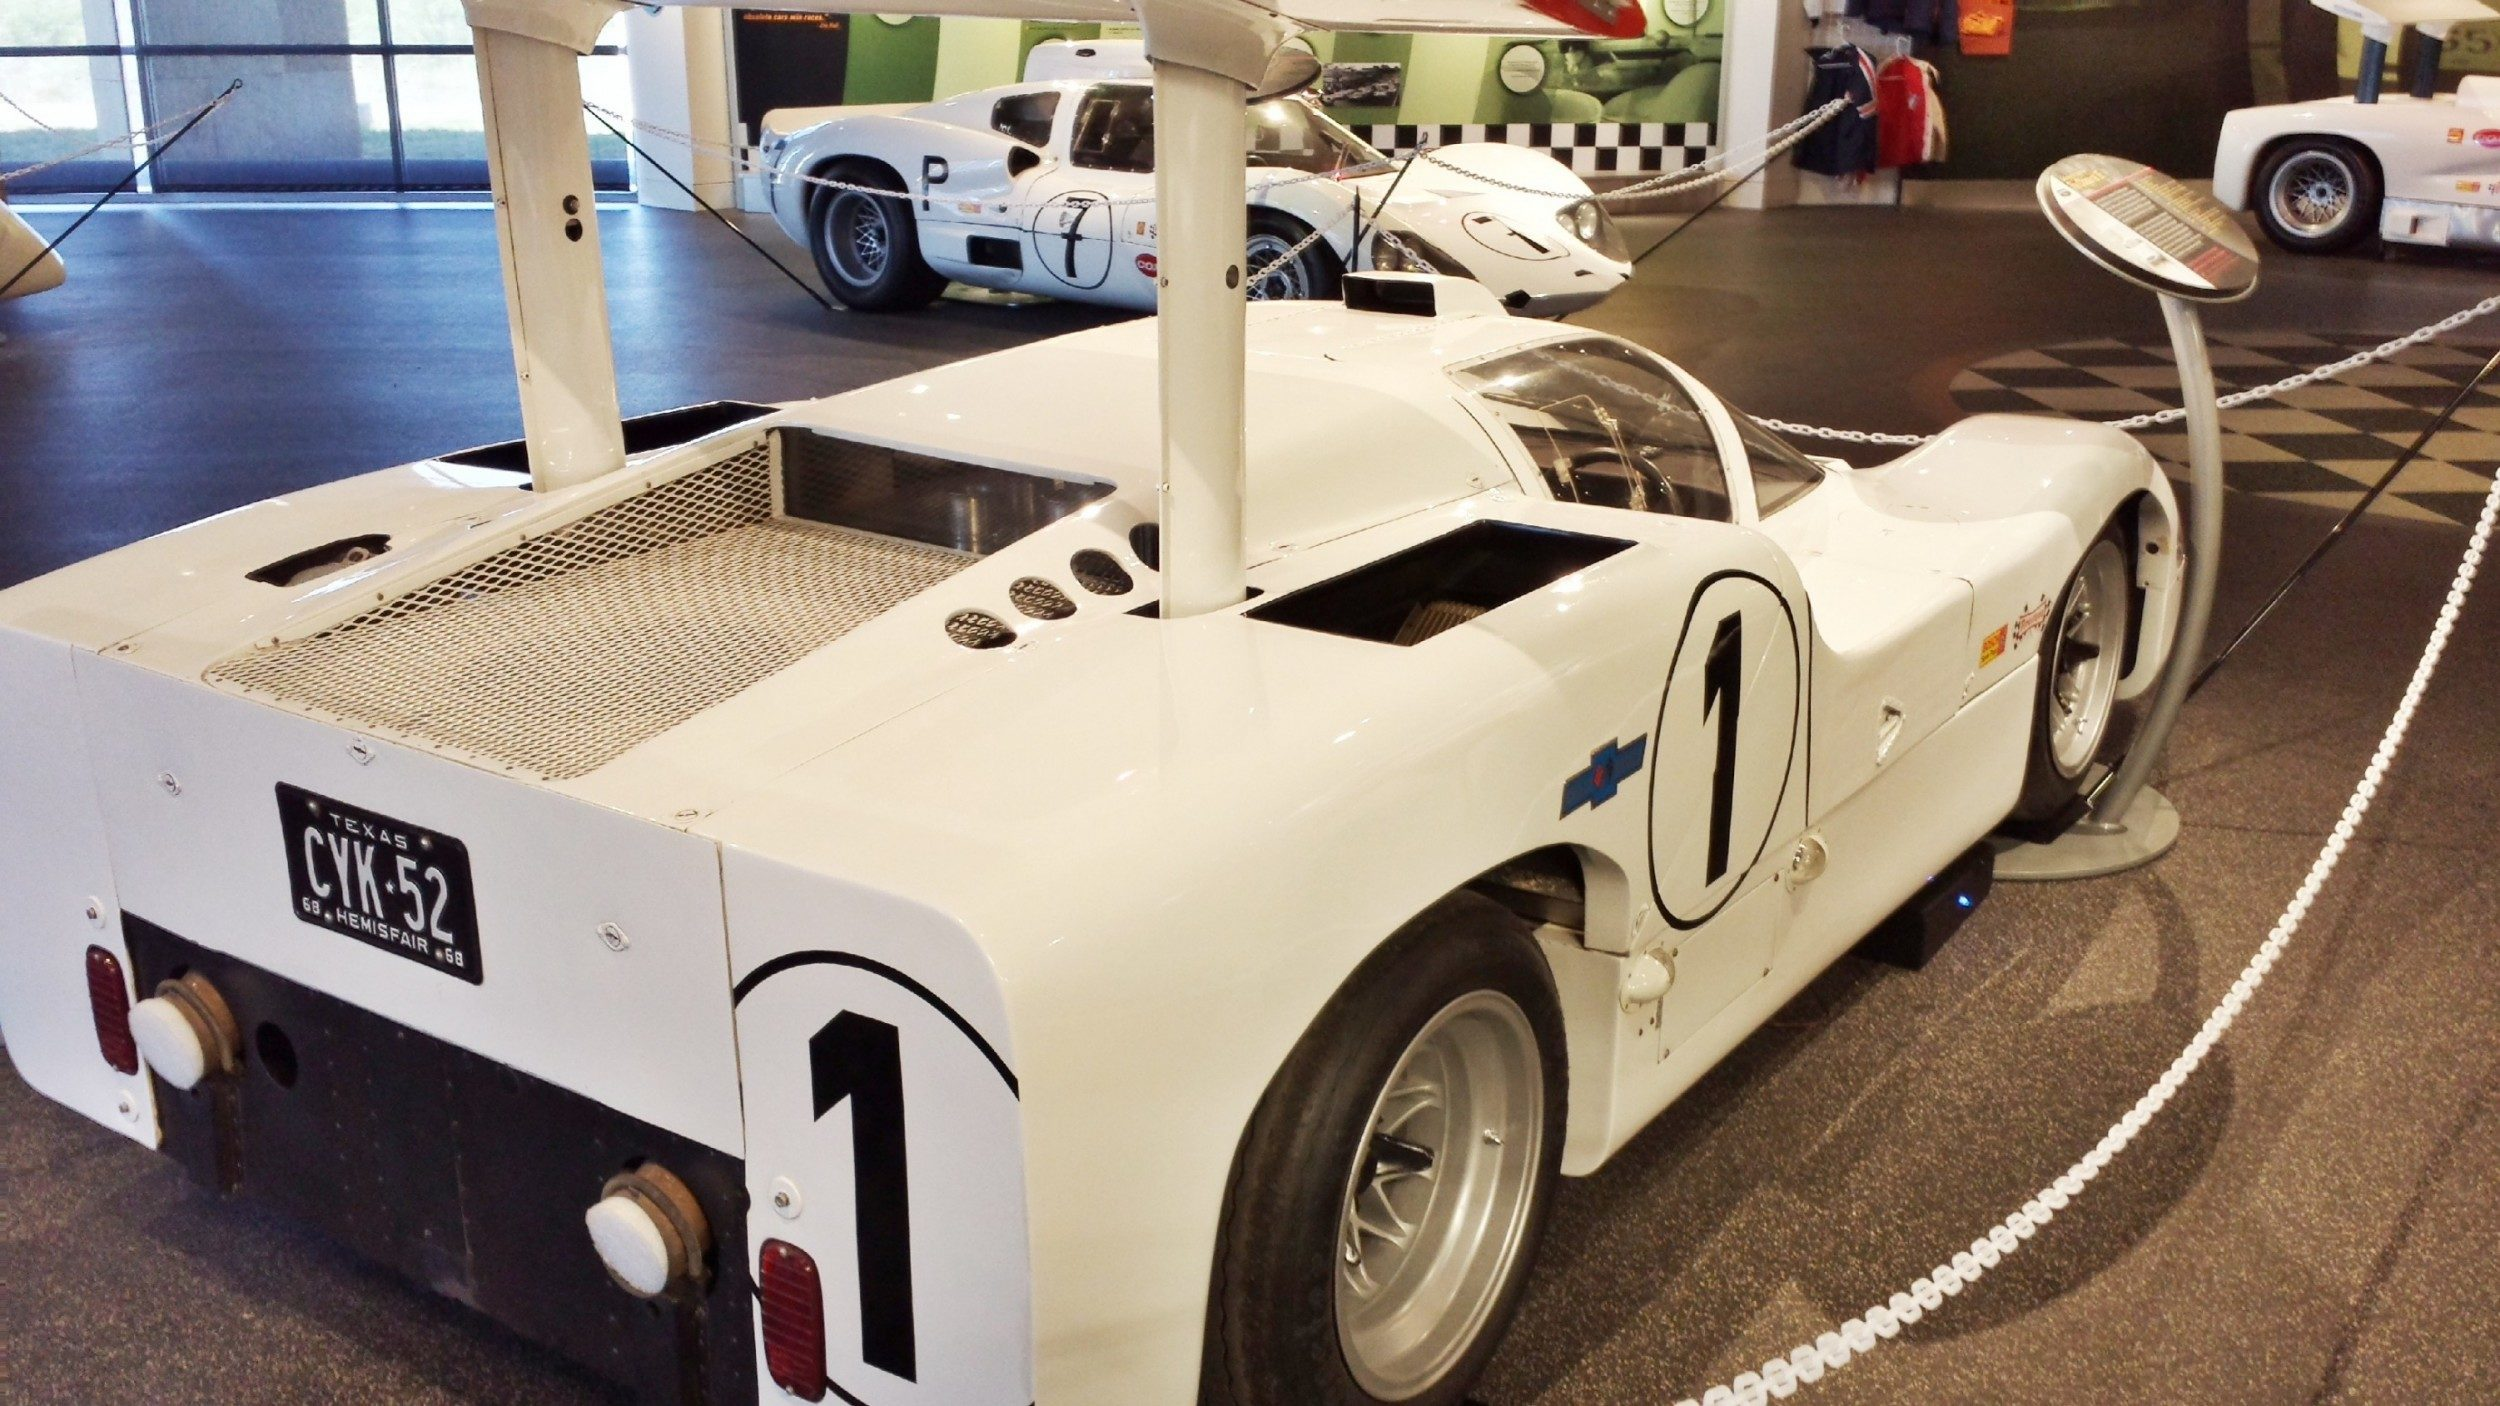 Jim Ellis Porsche >> See The Authentic Chaparral 2H and 2J Racecars at the Petroleum Museum in Midland, Texas